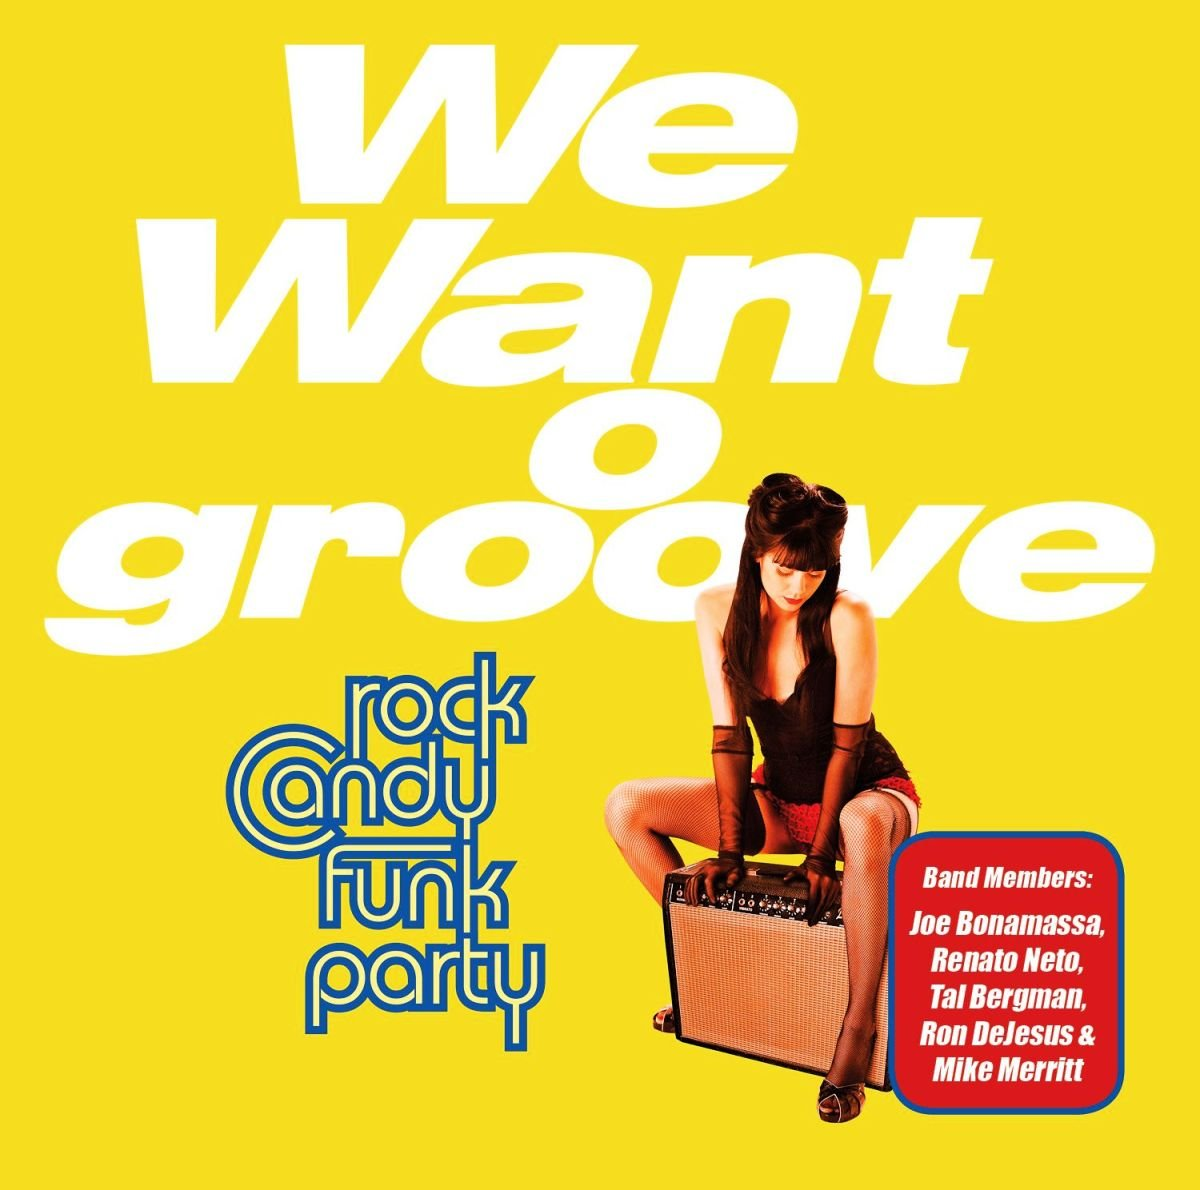 We Want Groove (Rock Candy Funk Party)